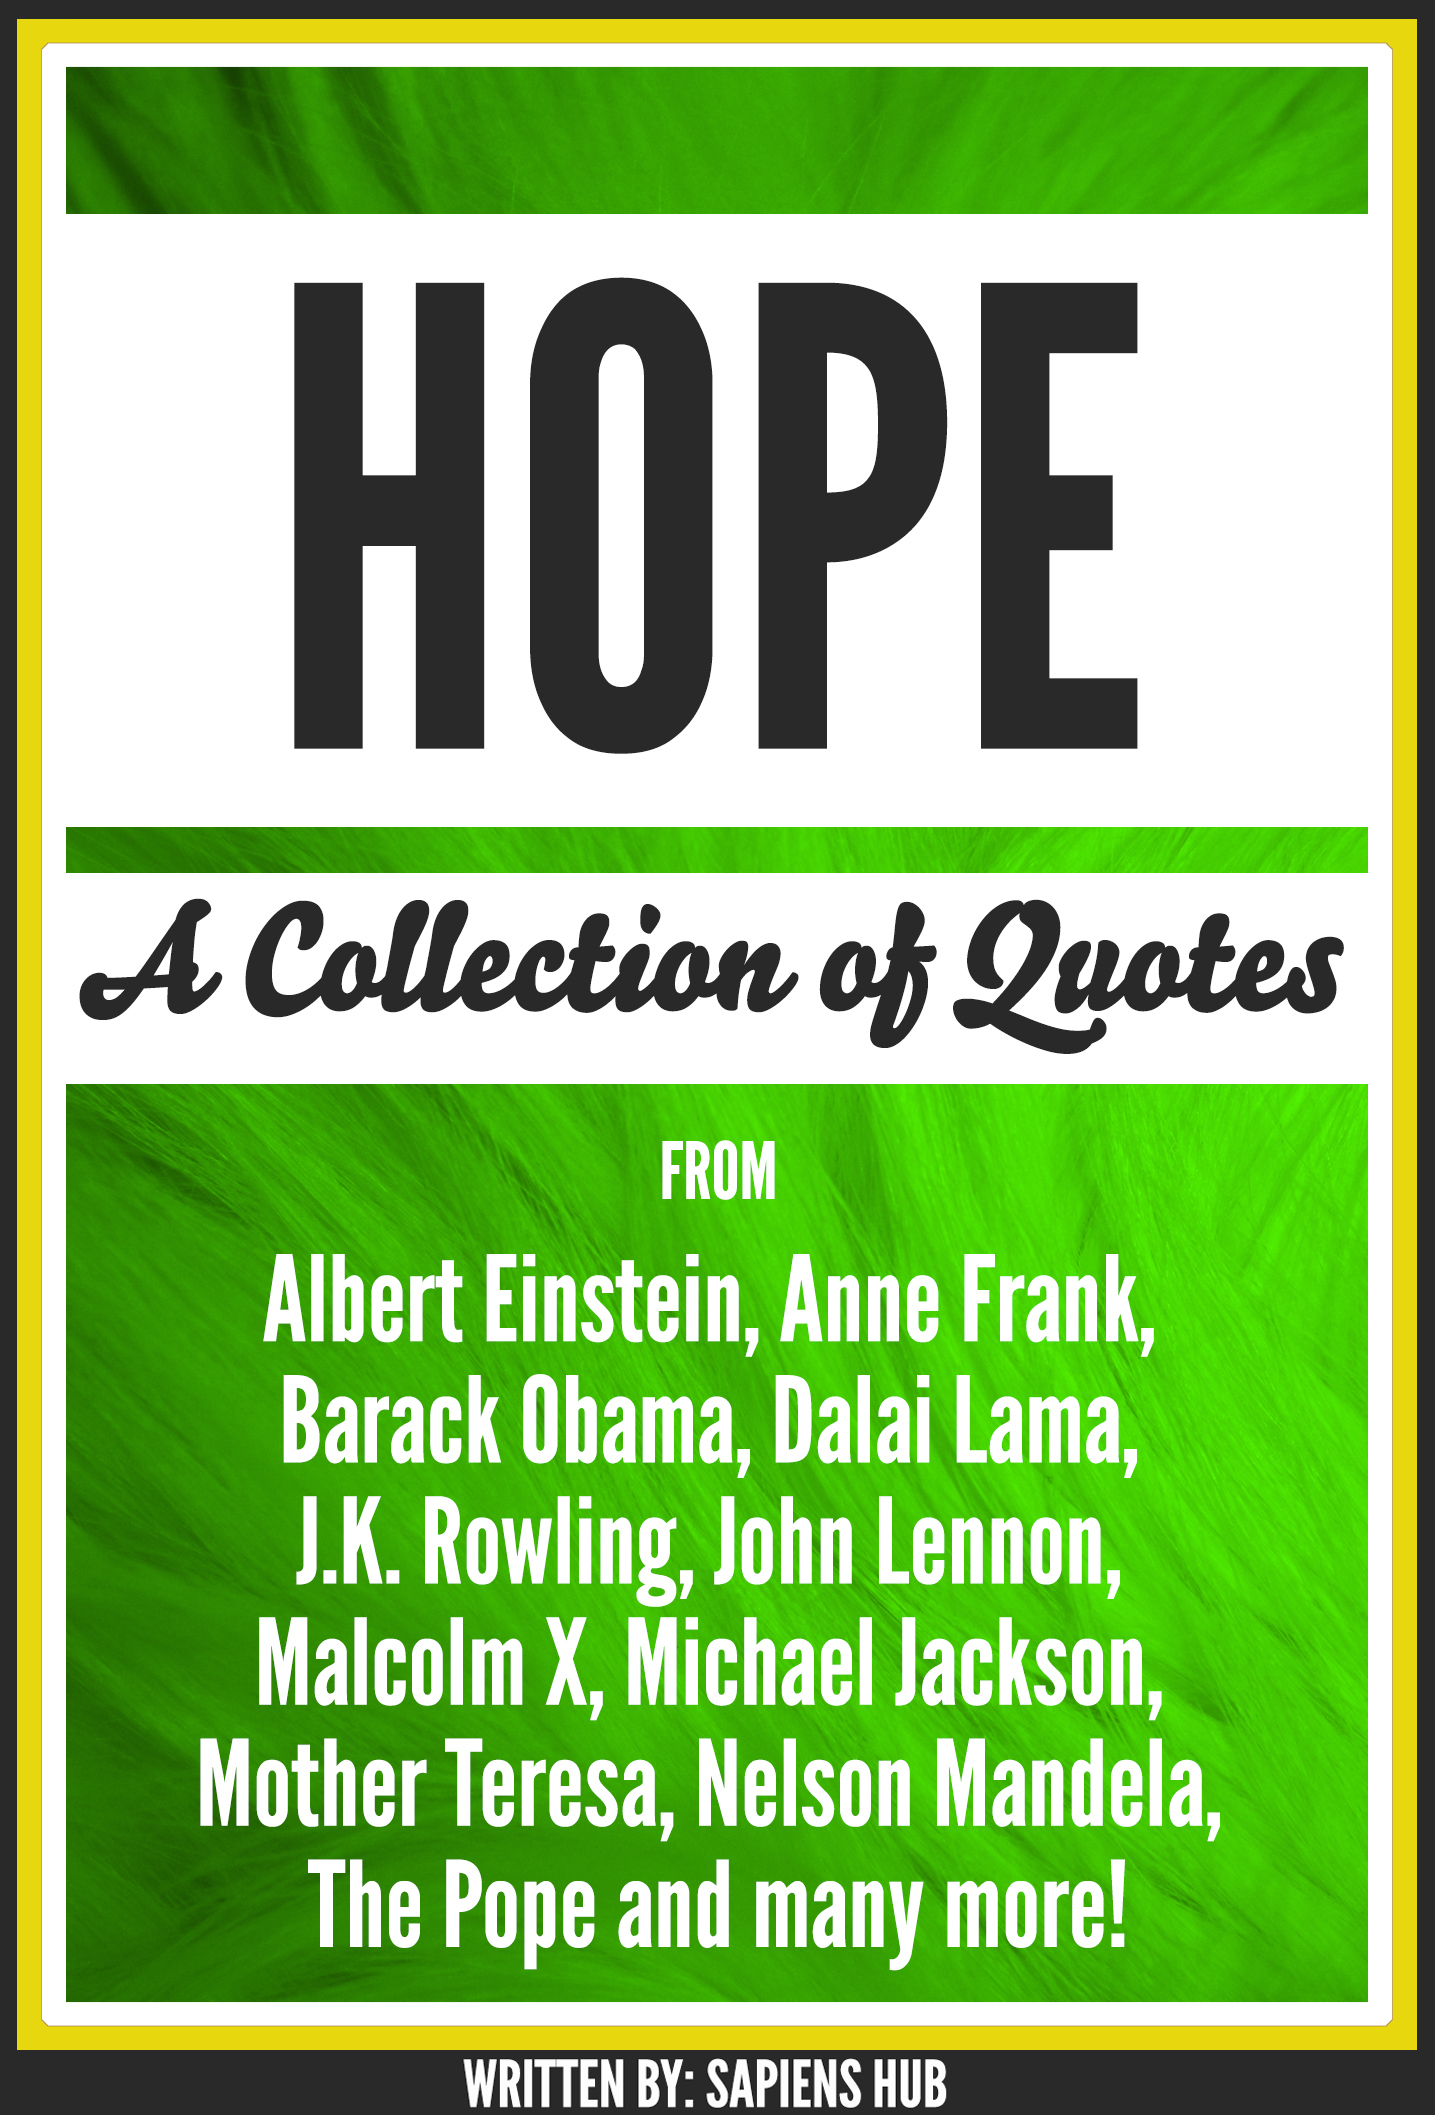 Hope: A Collection Of Quotes From Albert Einstein, Anne Frank, Barack Obama, Dalai Lama, J.K. Rowling, John Lennon, Malcolm X, Michael Jackson, Mother Teresa, Nelson Mandela, The Pope And Many More!